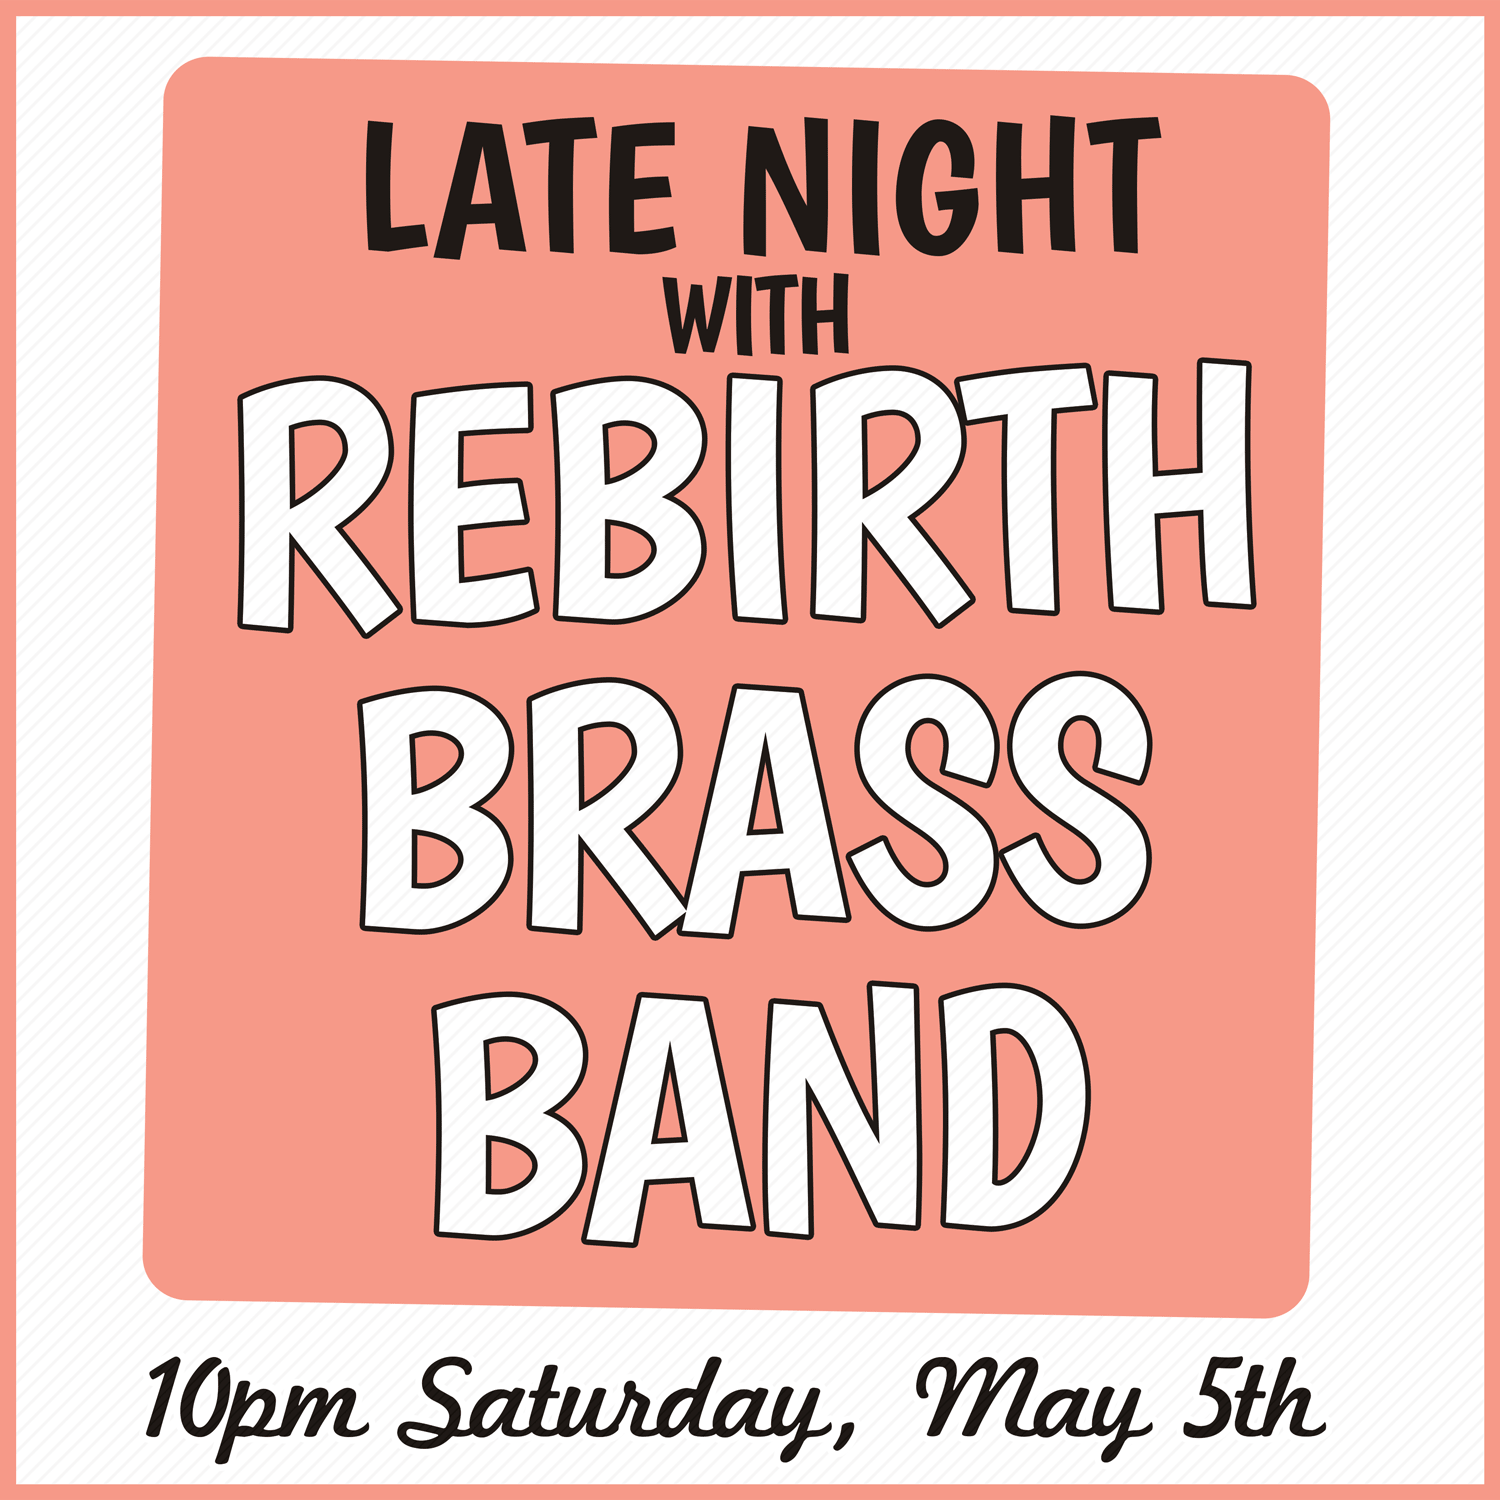 Fest Late Night with Rebirth Brass Band at the Maison